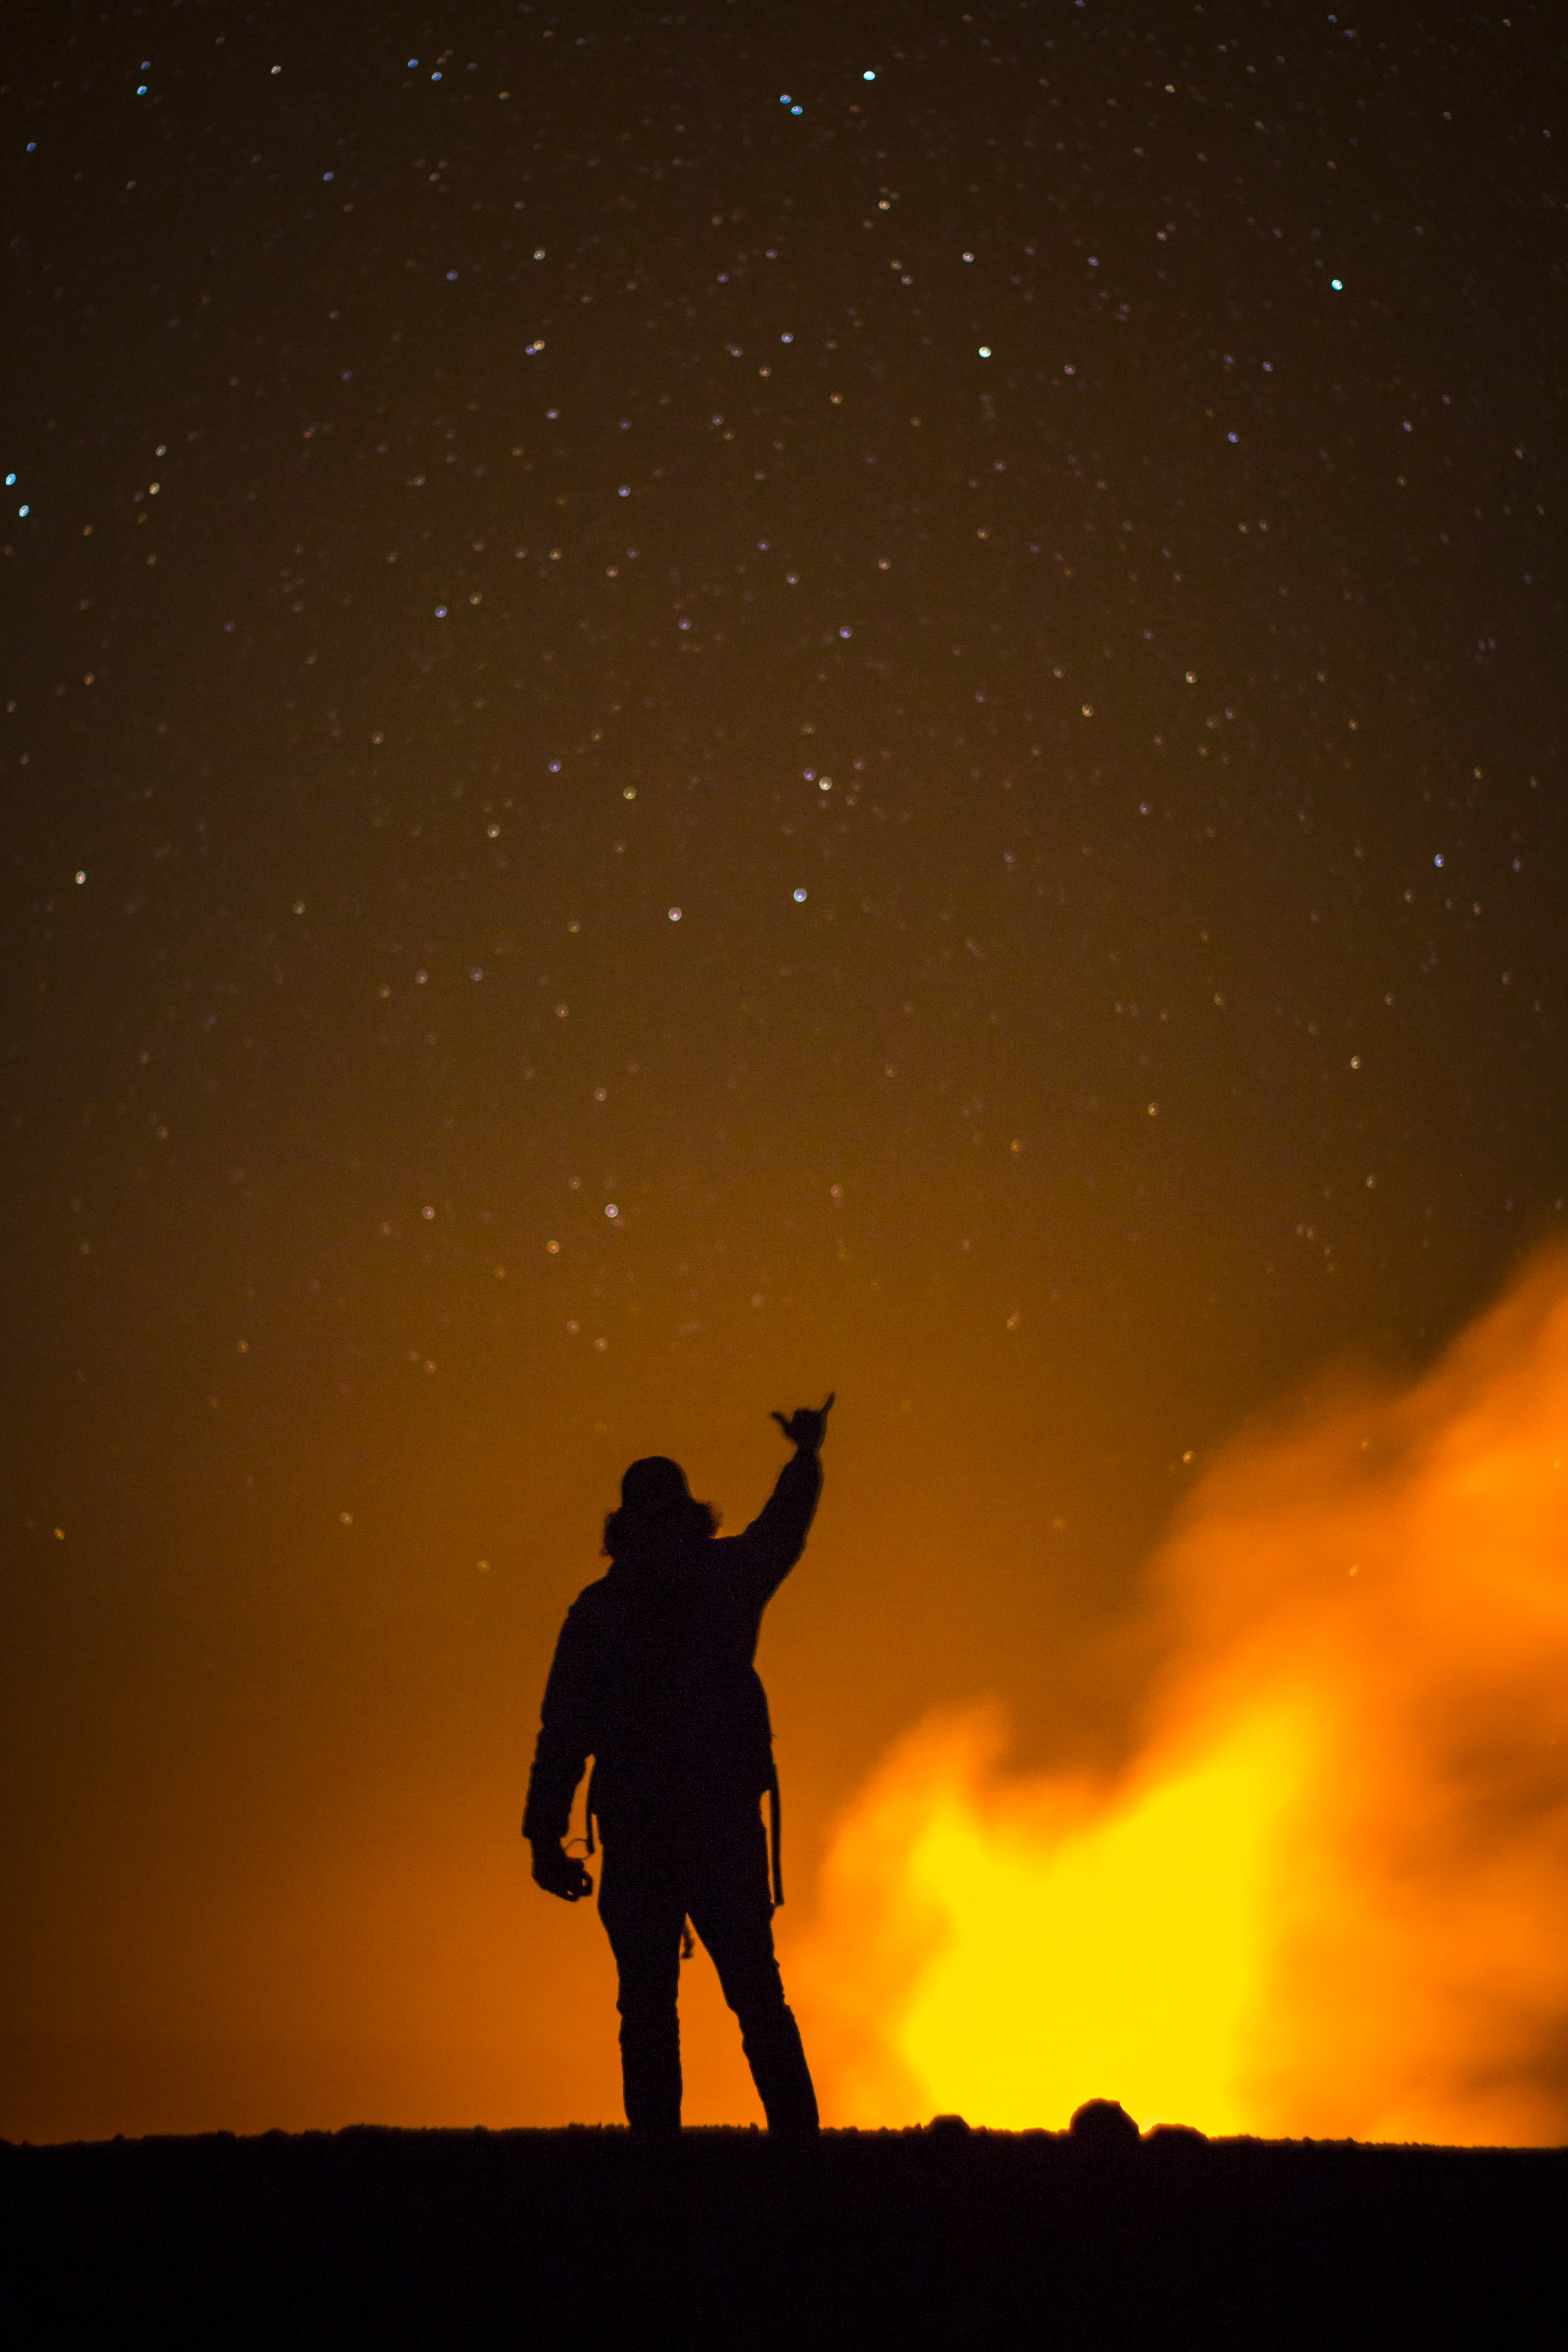 silhouette of man raising right hand